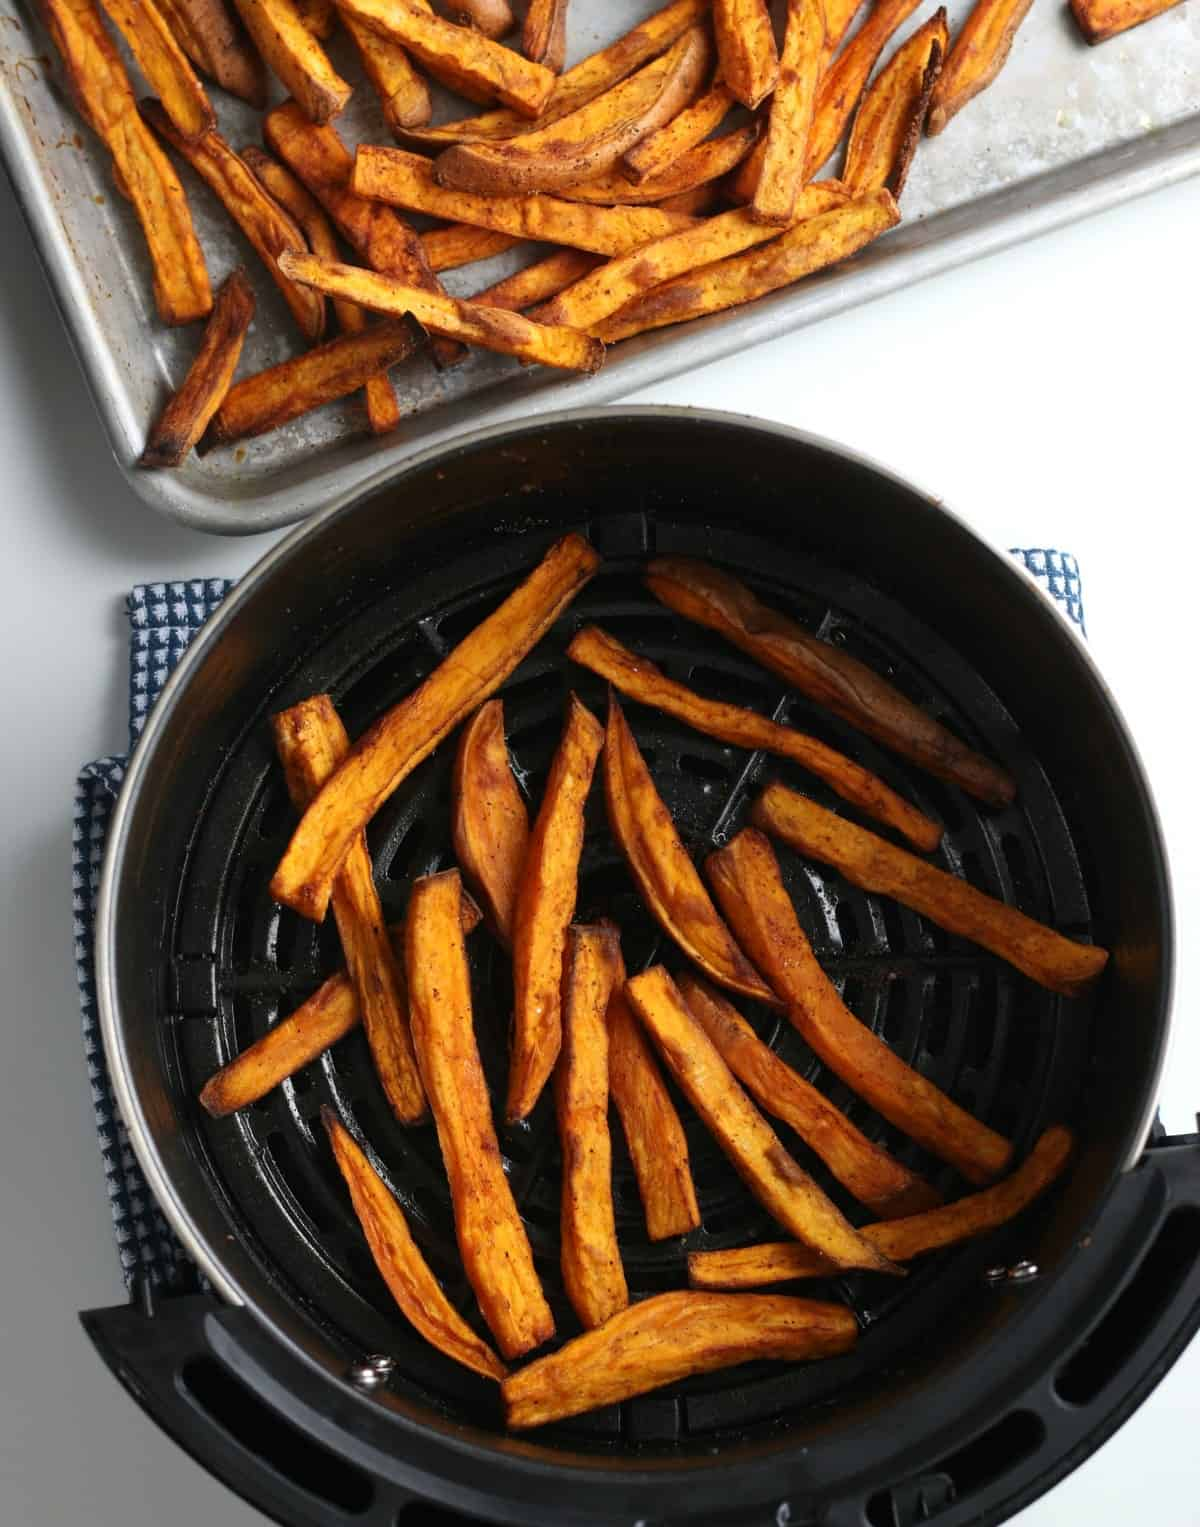 Looking down in an air fryer at cooked sweet potato fries.